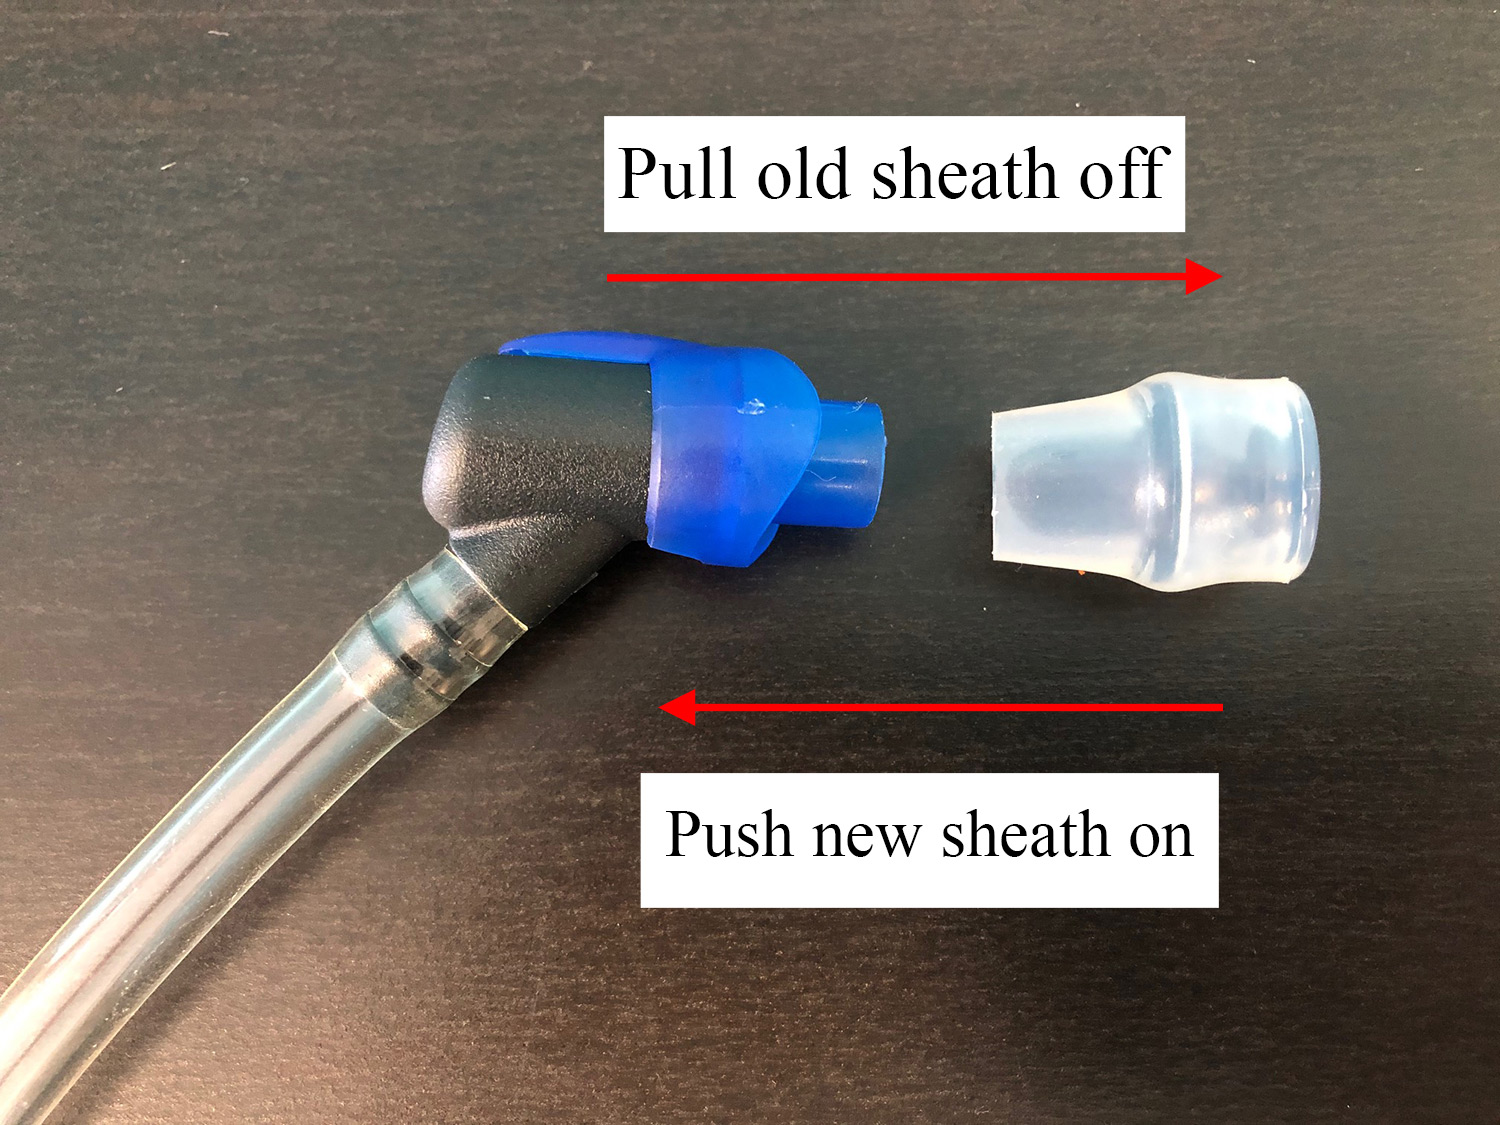 pull-push-sheath-replacement.jpg